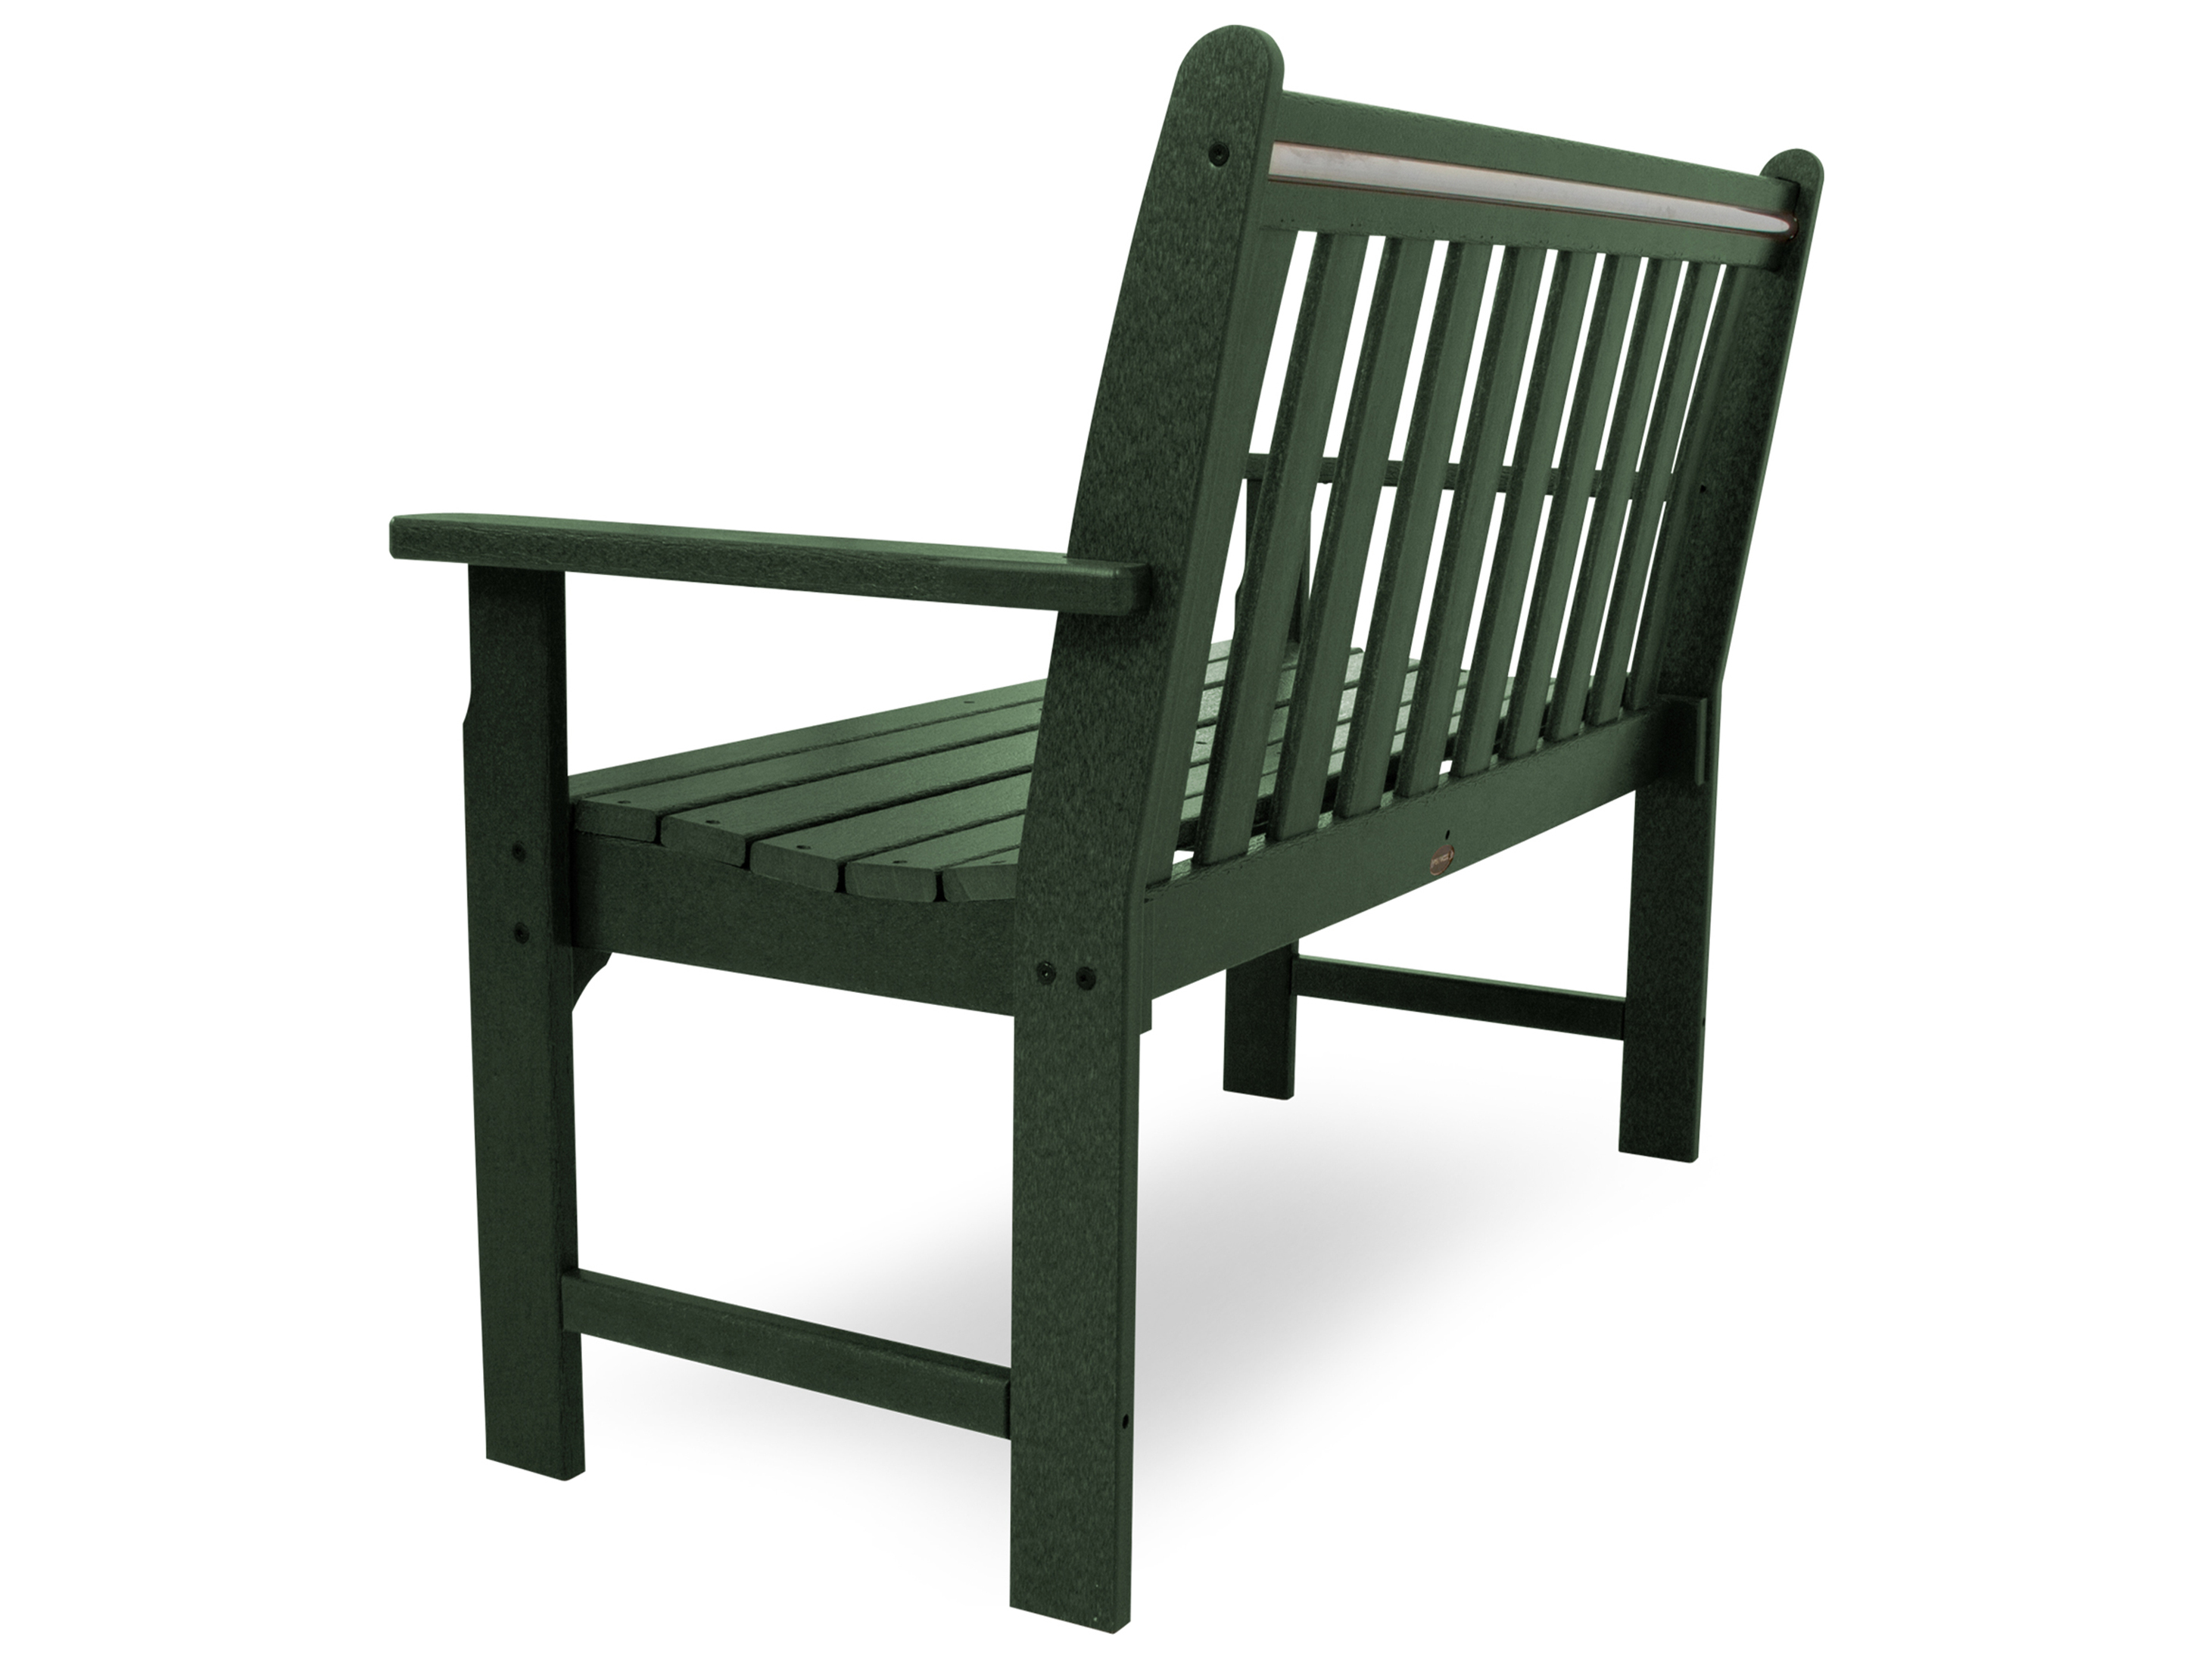 Polywood Vineyard Recycled Plastic Bench Gnb48